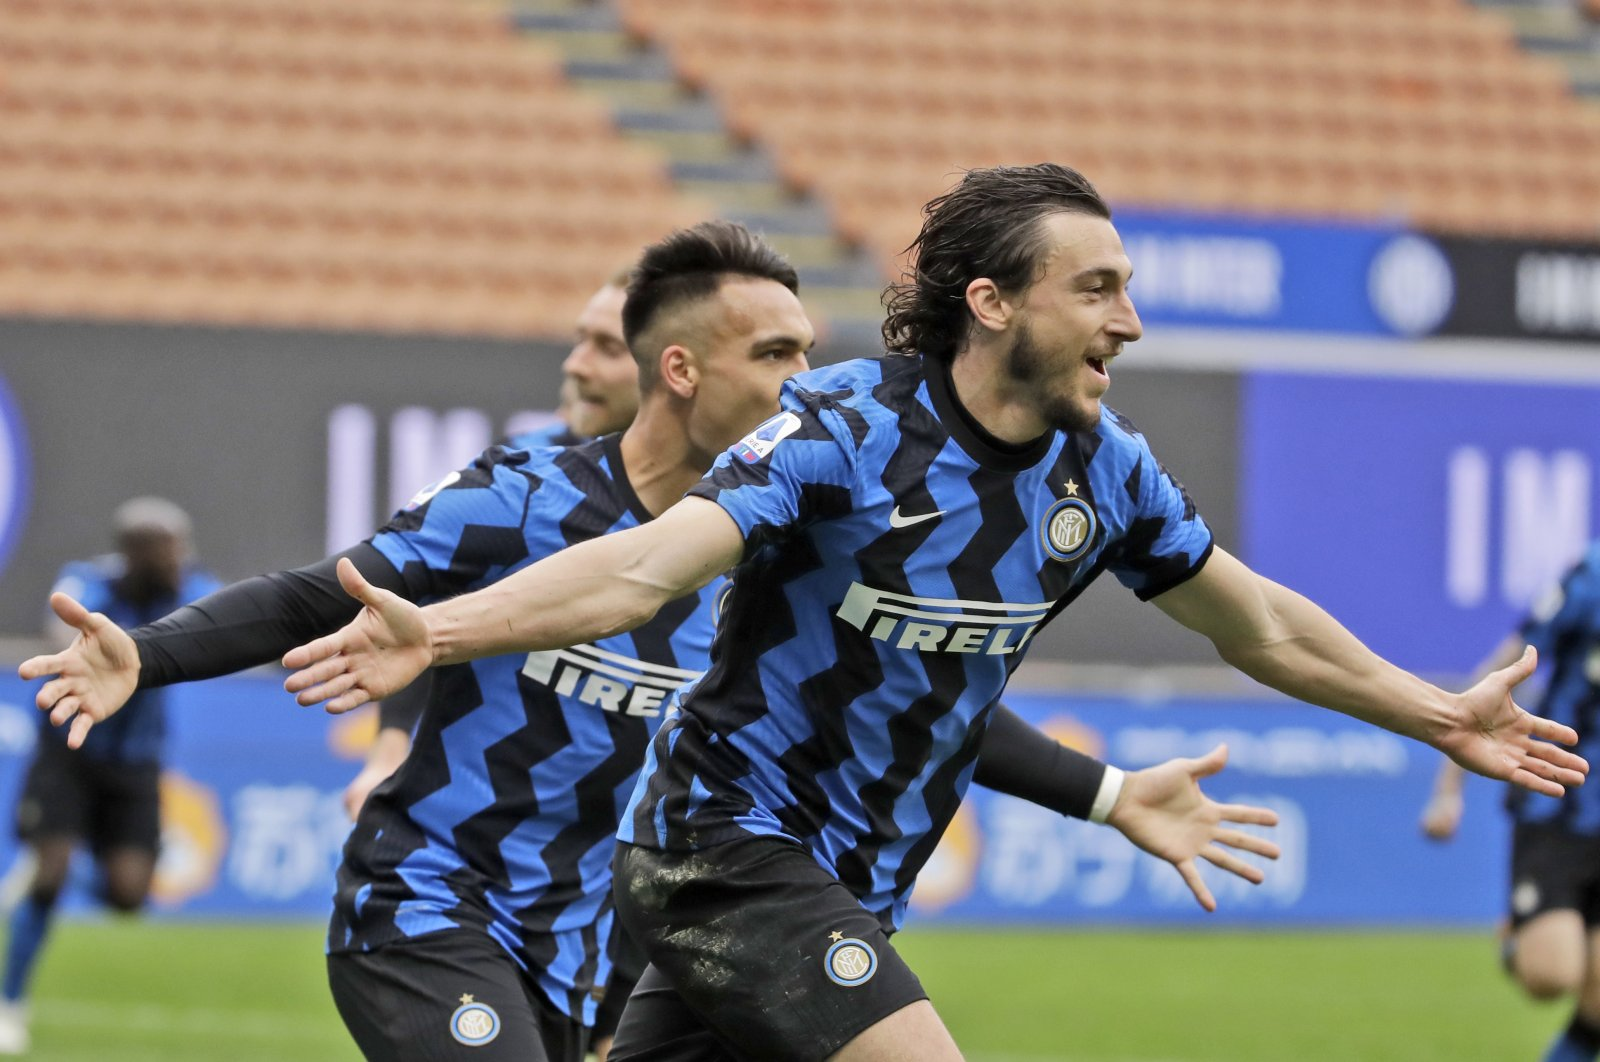 Inter Milan's Matteo Darmian celebrates after scoring during a Serie A match against Cagliari at the San Siro stadium Milan, Italy, Sunday, April 11, 2021. (AP Photo)